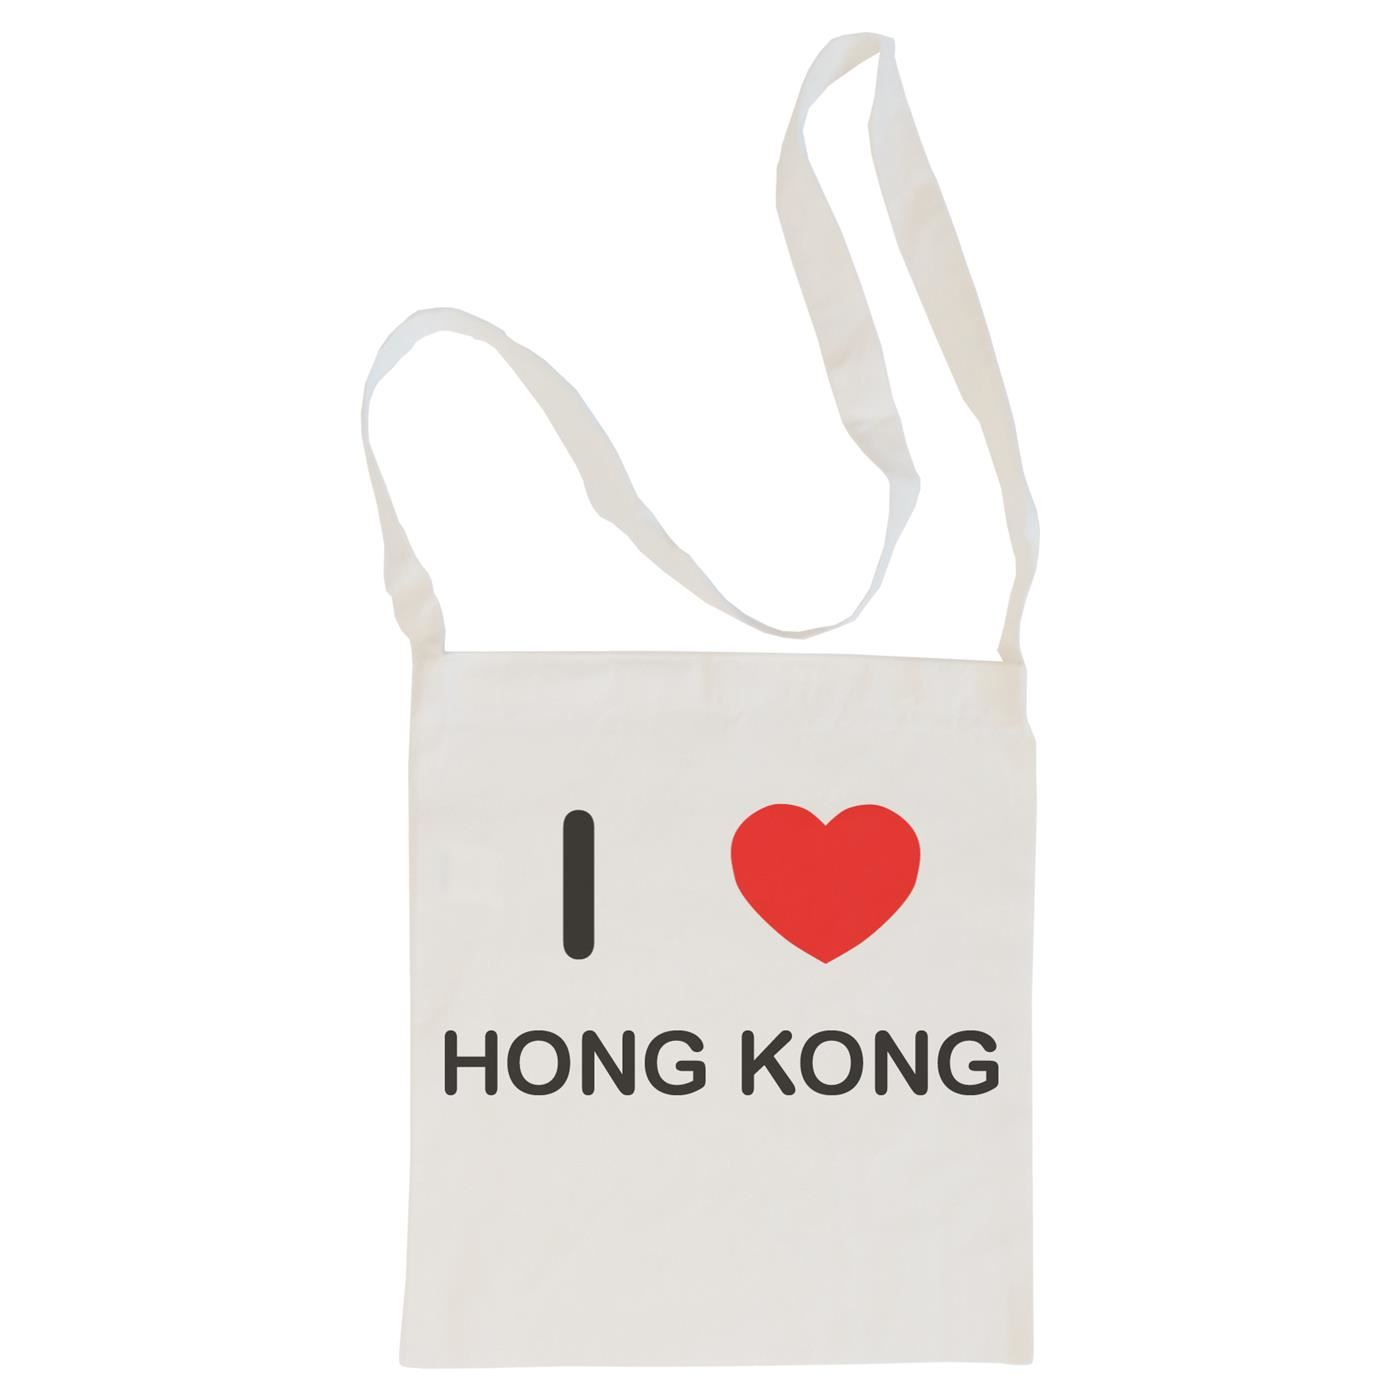 I Love Hong Kong - Cotton Bag | Size choice Tote, Shopper or Sling